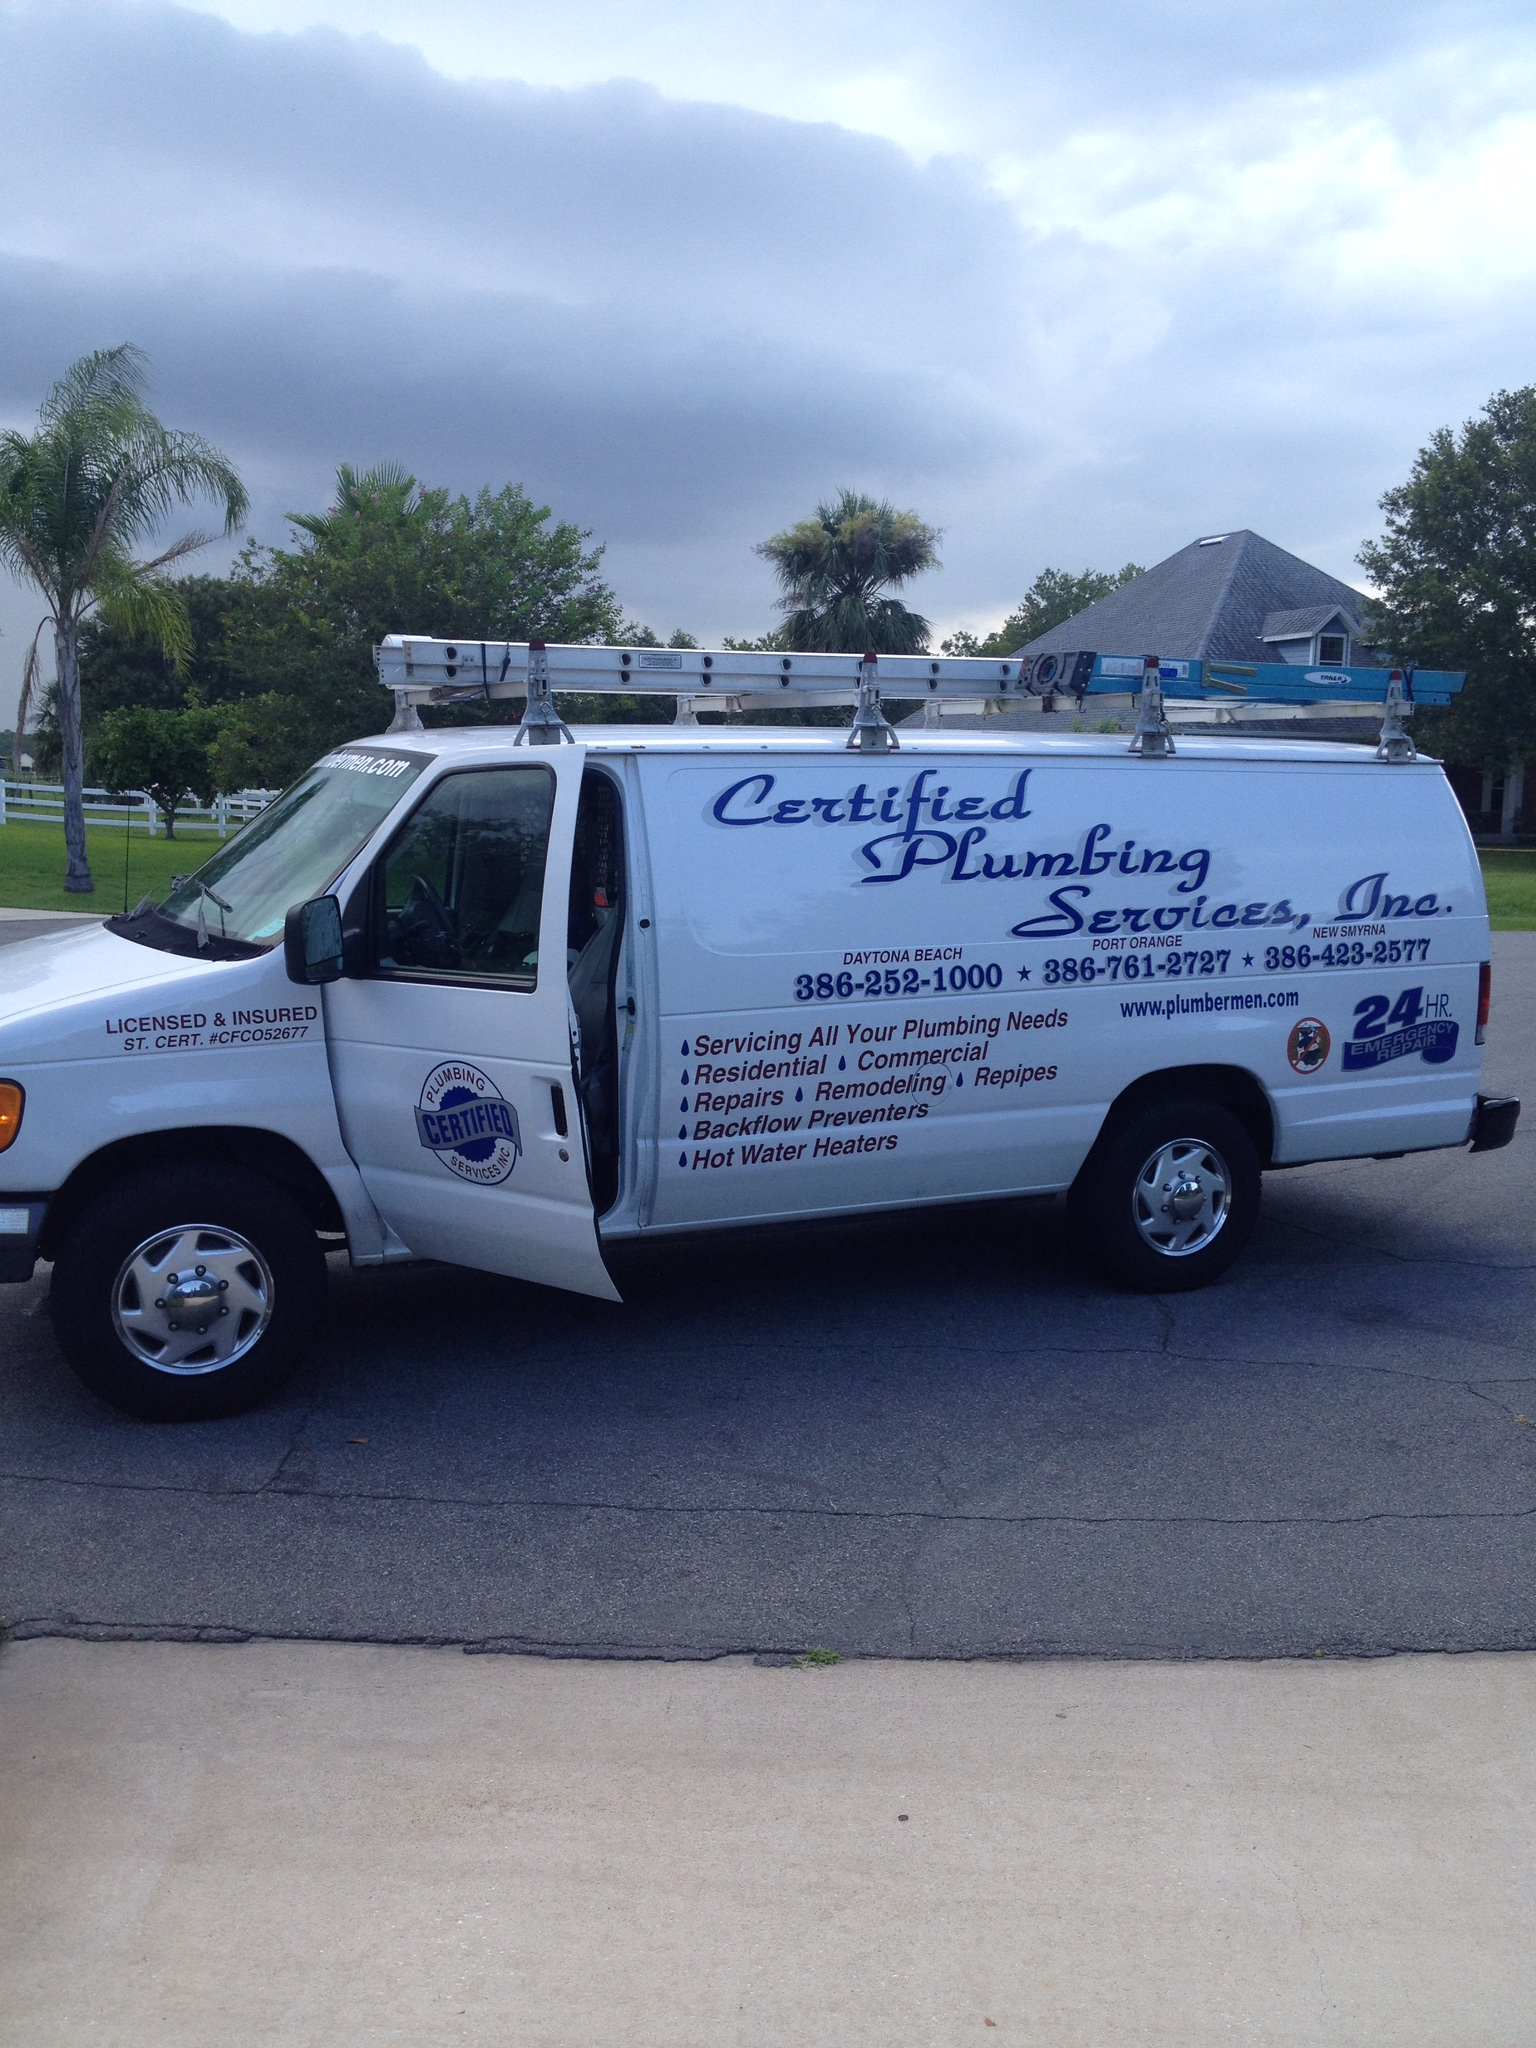 Certified Plumbing Services Inc image 1